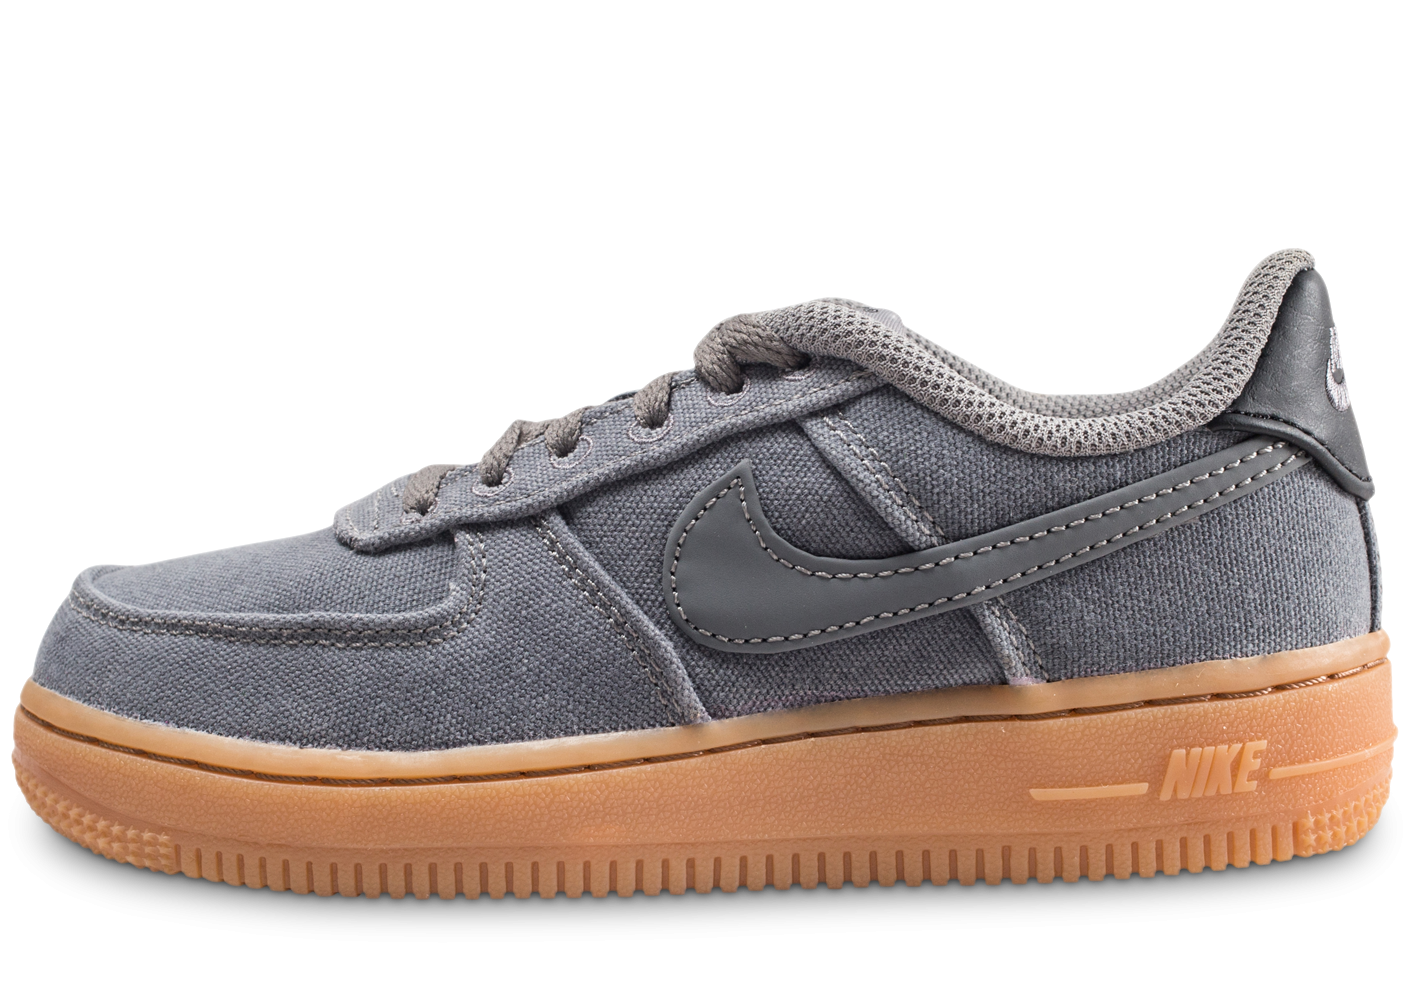 énorme réduction 11806 58c5f Nike Air Force 1 LV8 Style gris enfant